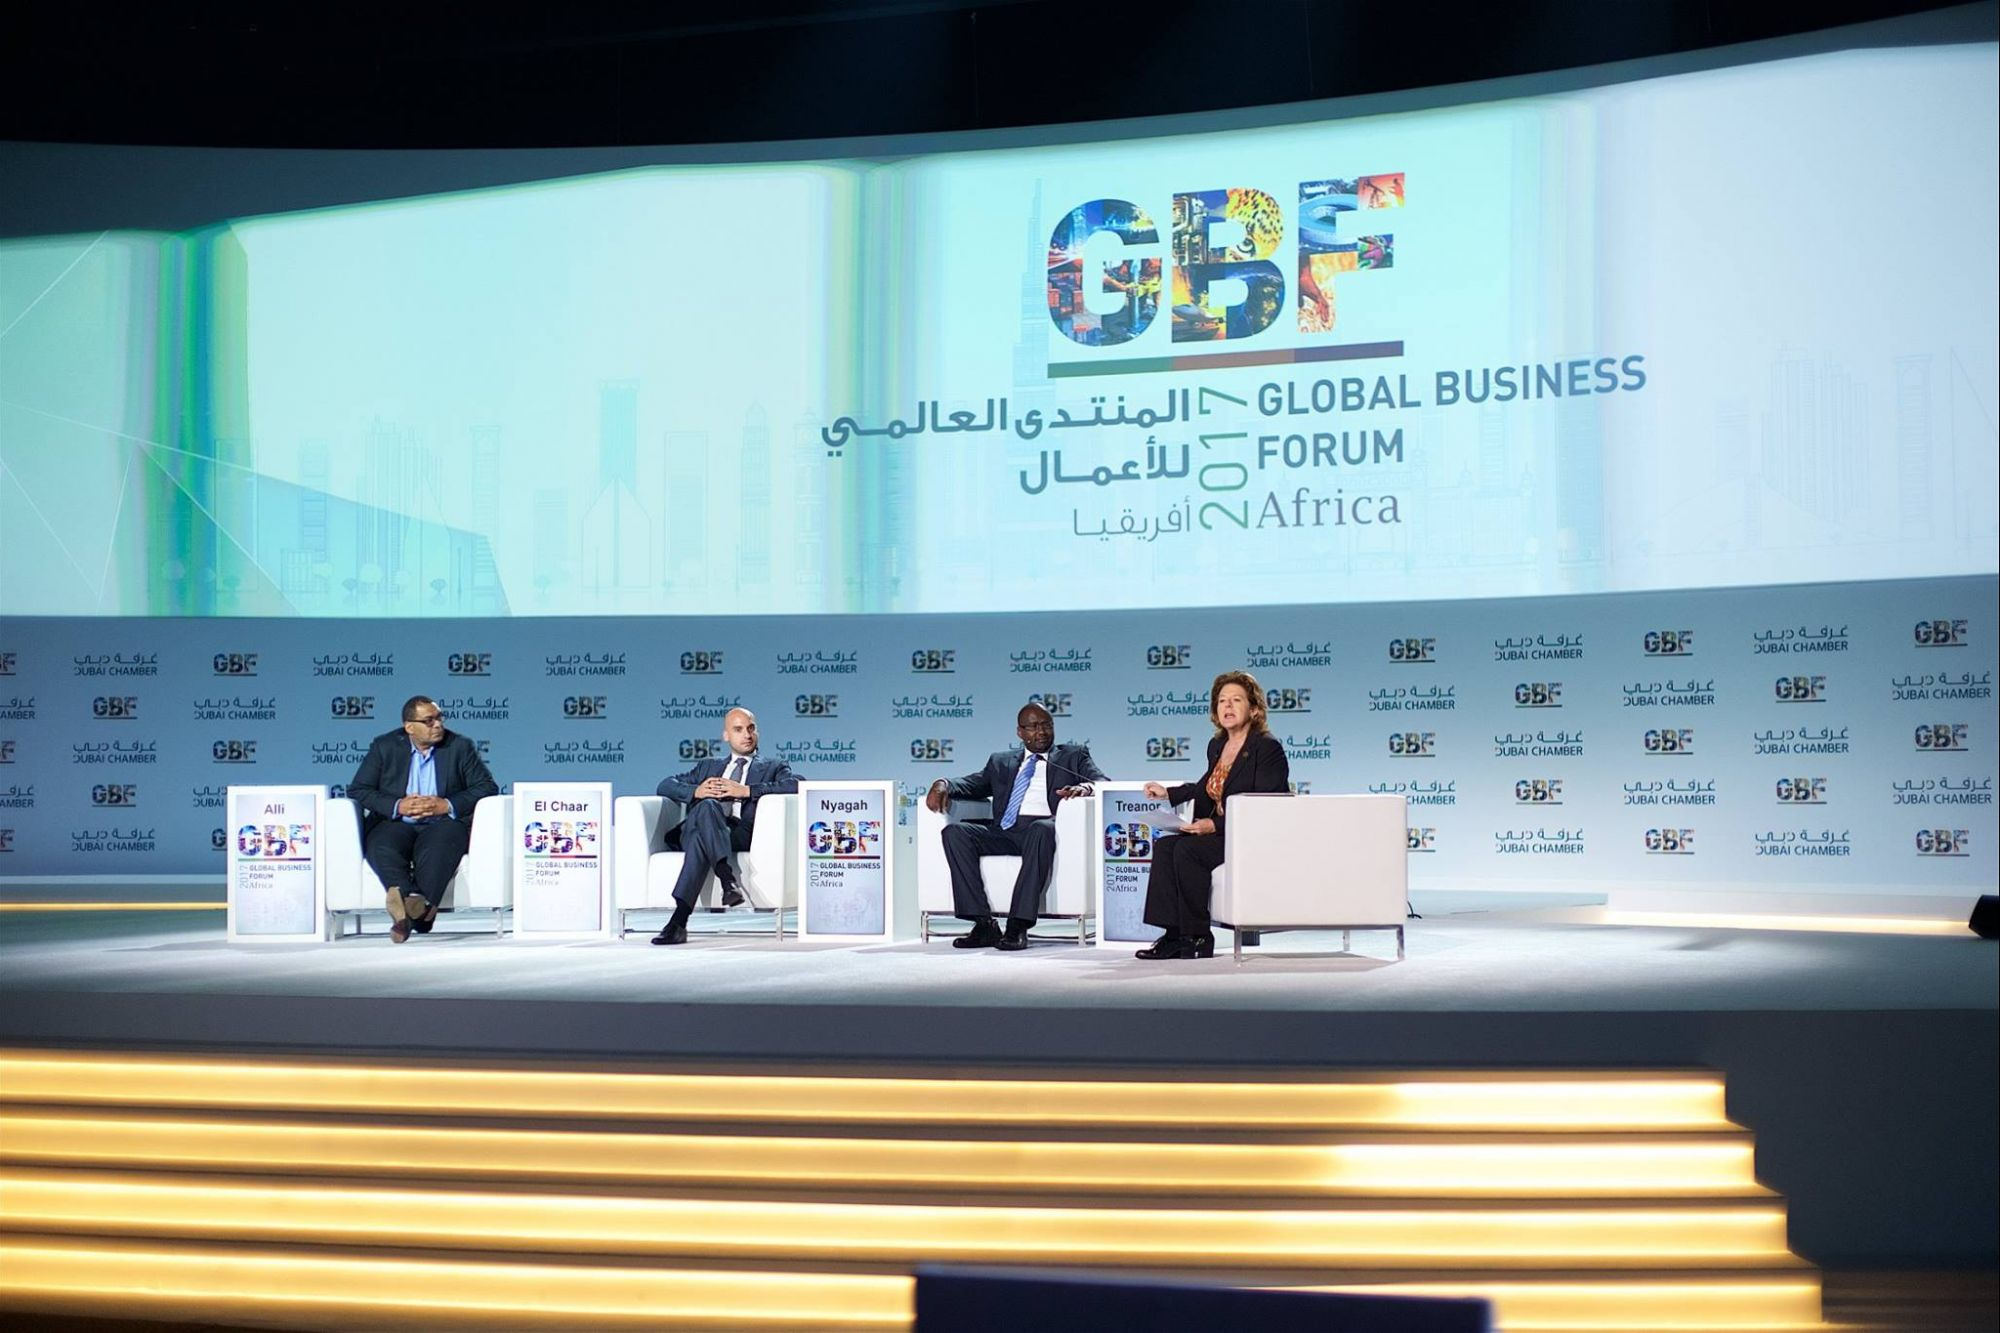 """Scale-Up Africa"" To Be Theme Of Dubai Chamber's Fifth Global Business Forum Africa In November 2019"